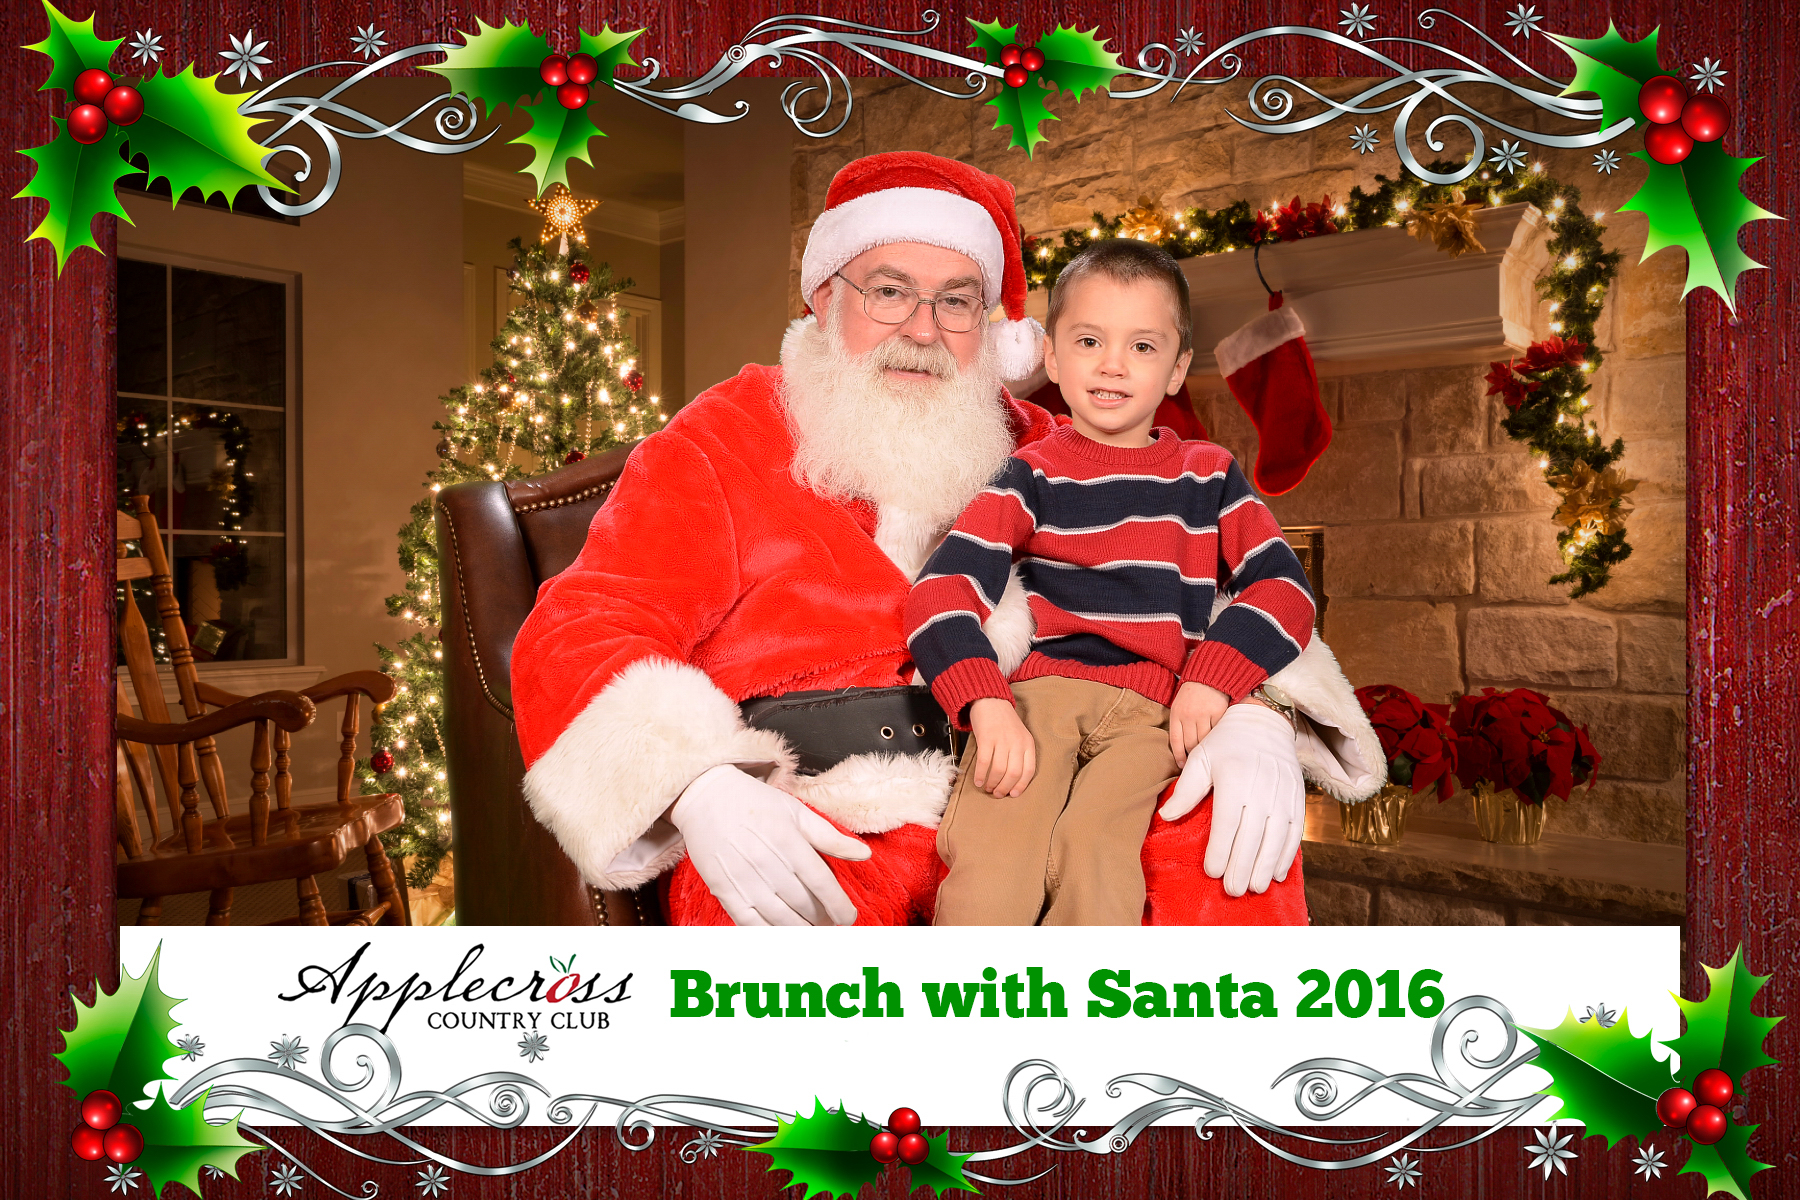 Snap-Party-Studio-Brunch-With-Santa.jpg